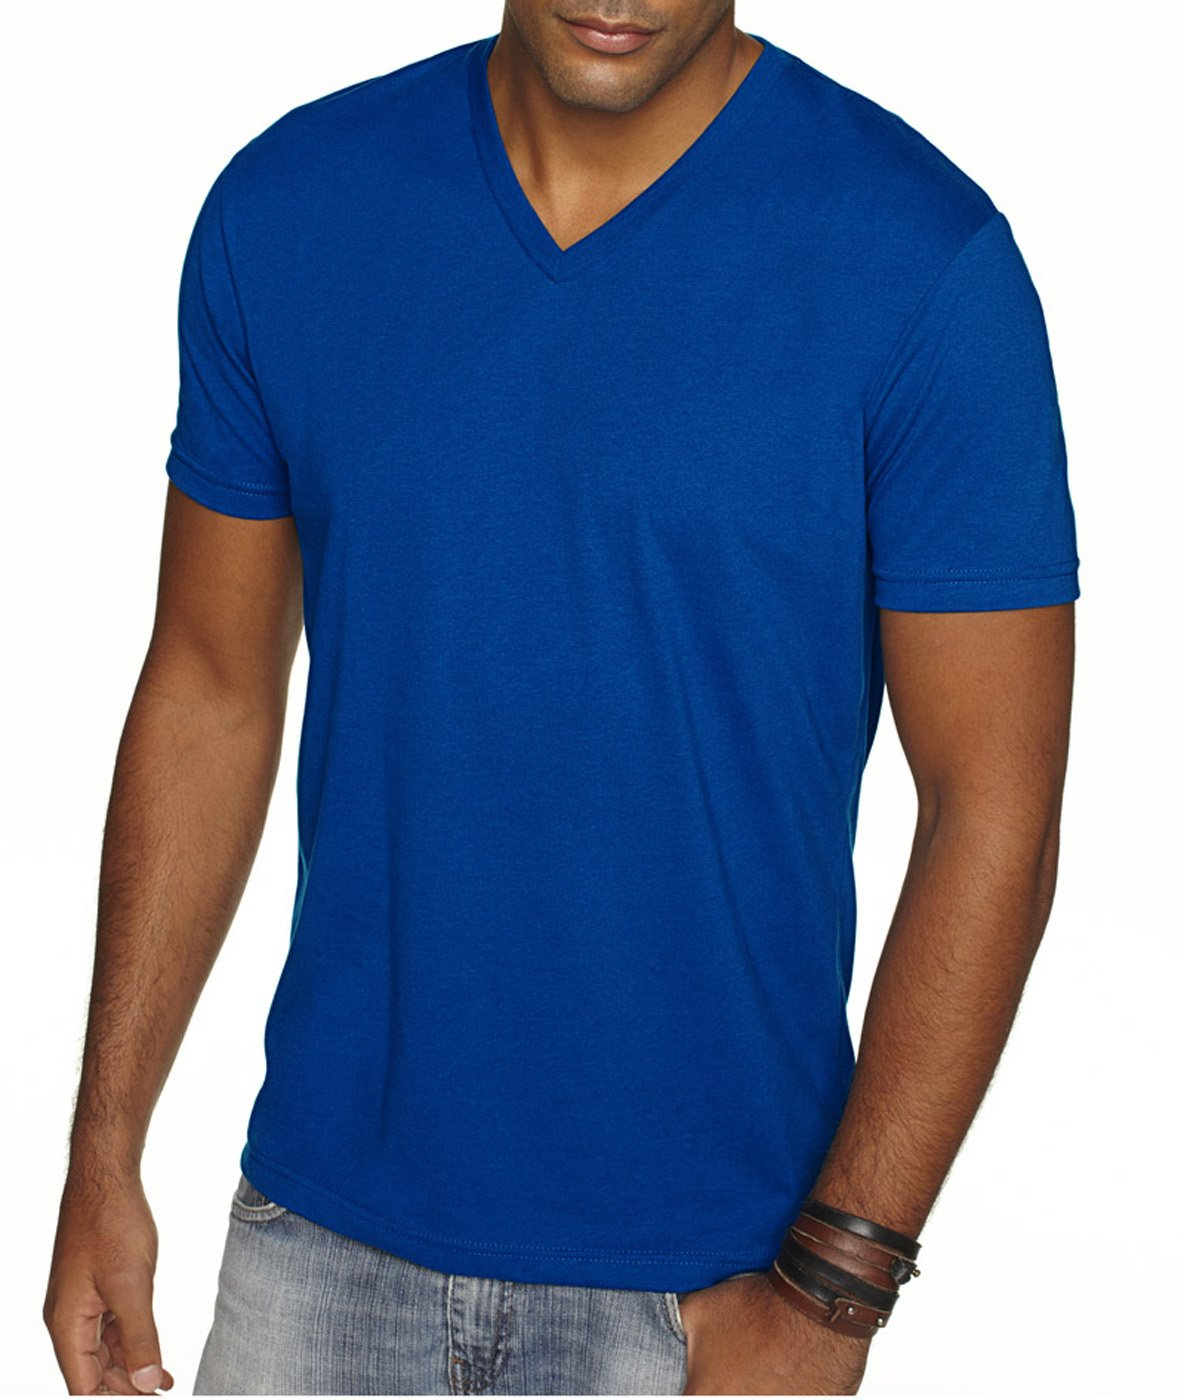 Next Level Apparel 6440 Mens Premium Fitted Sueded V-Neck Tee -2 Pack